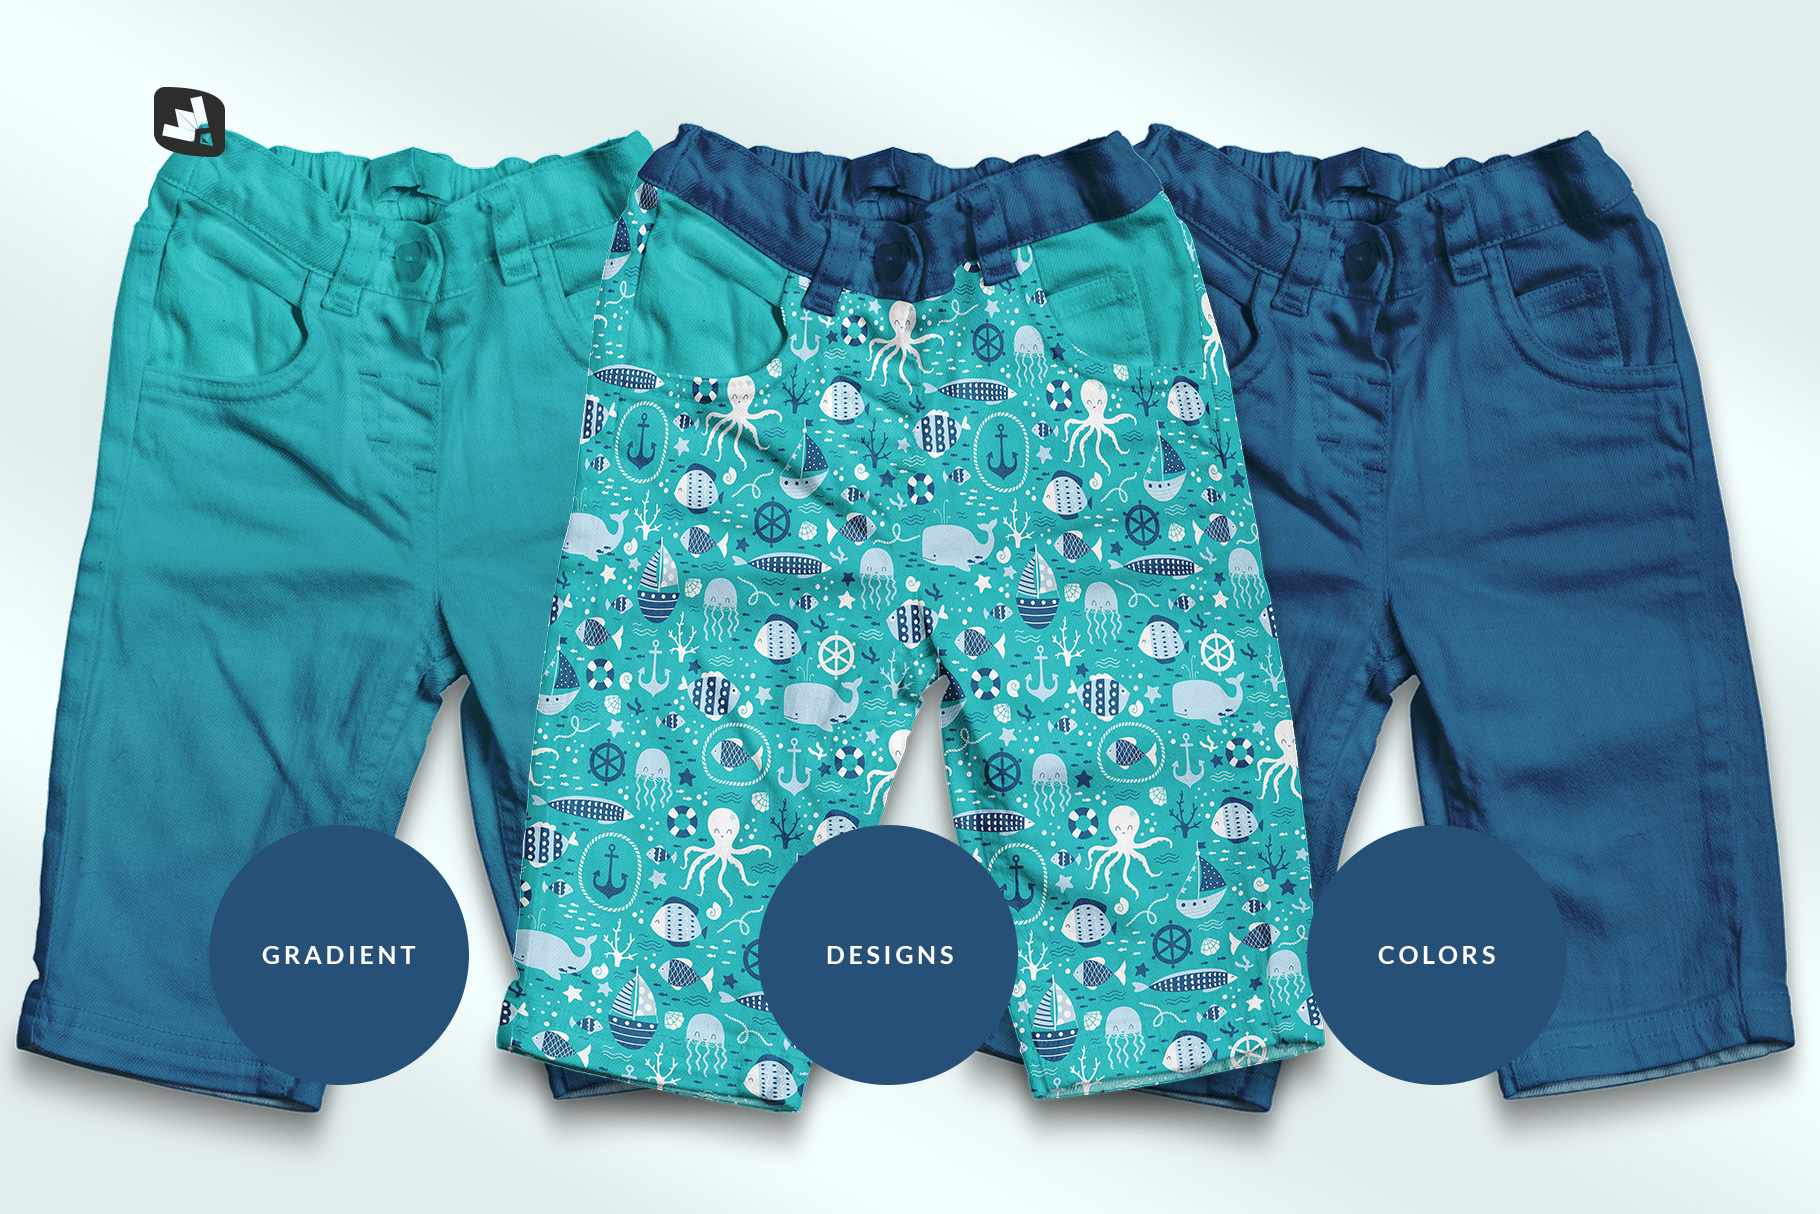 types of the top view kid's jeans mockup